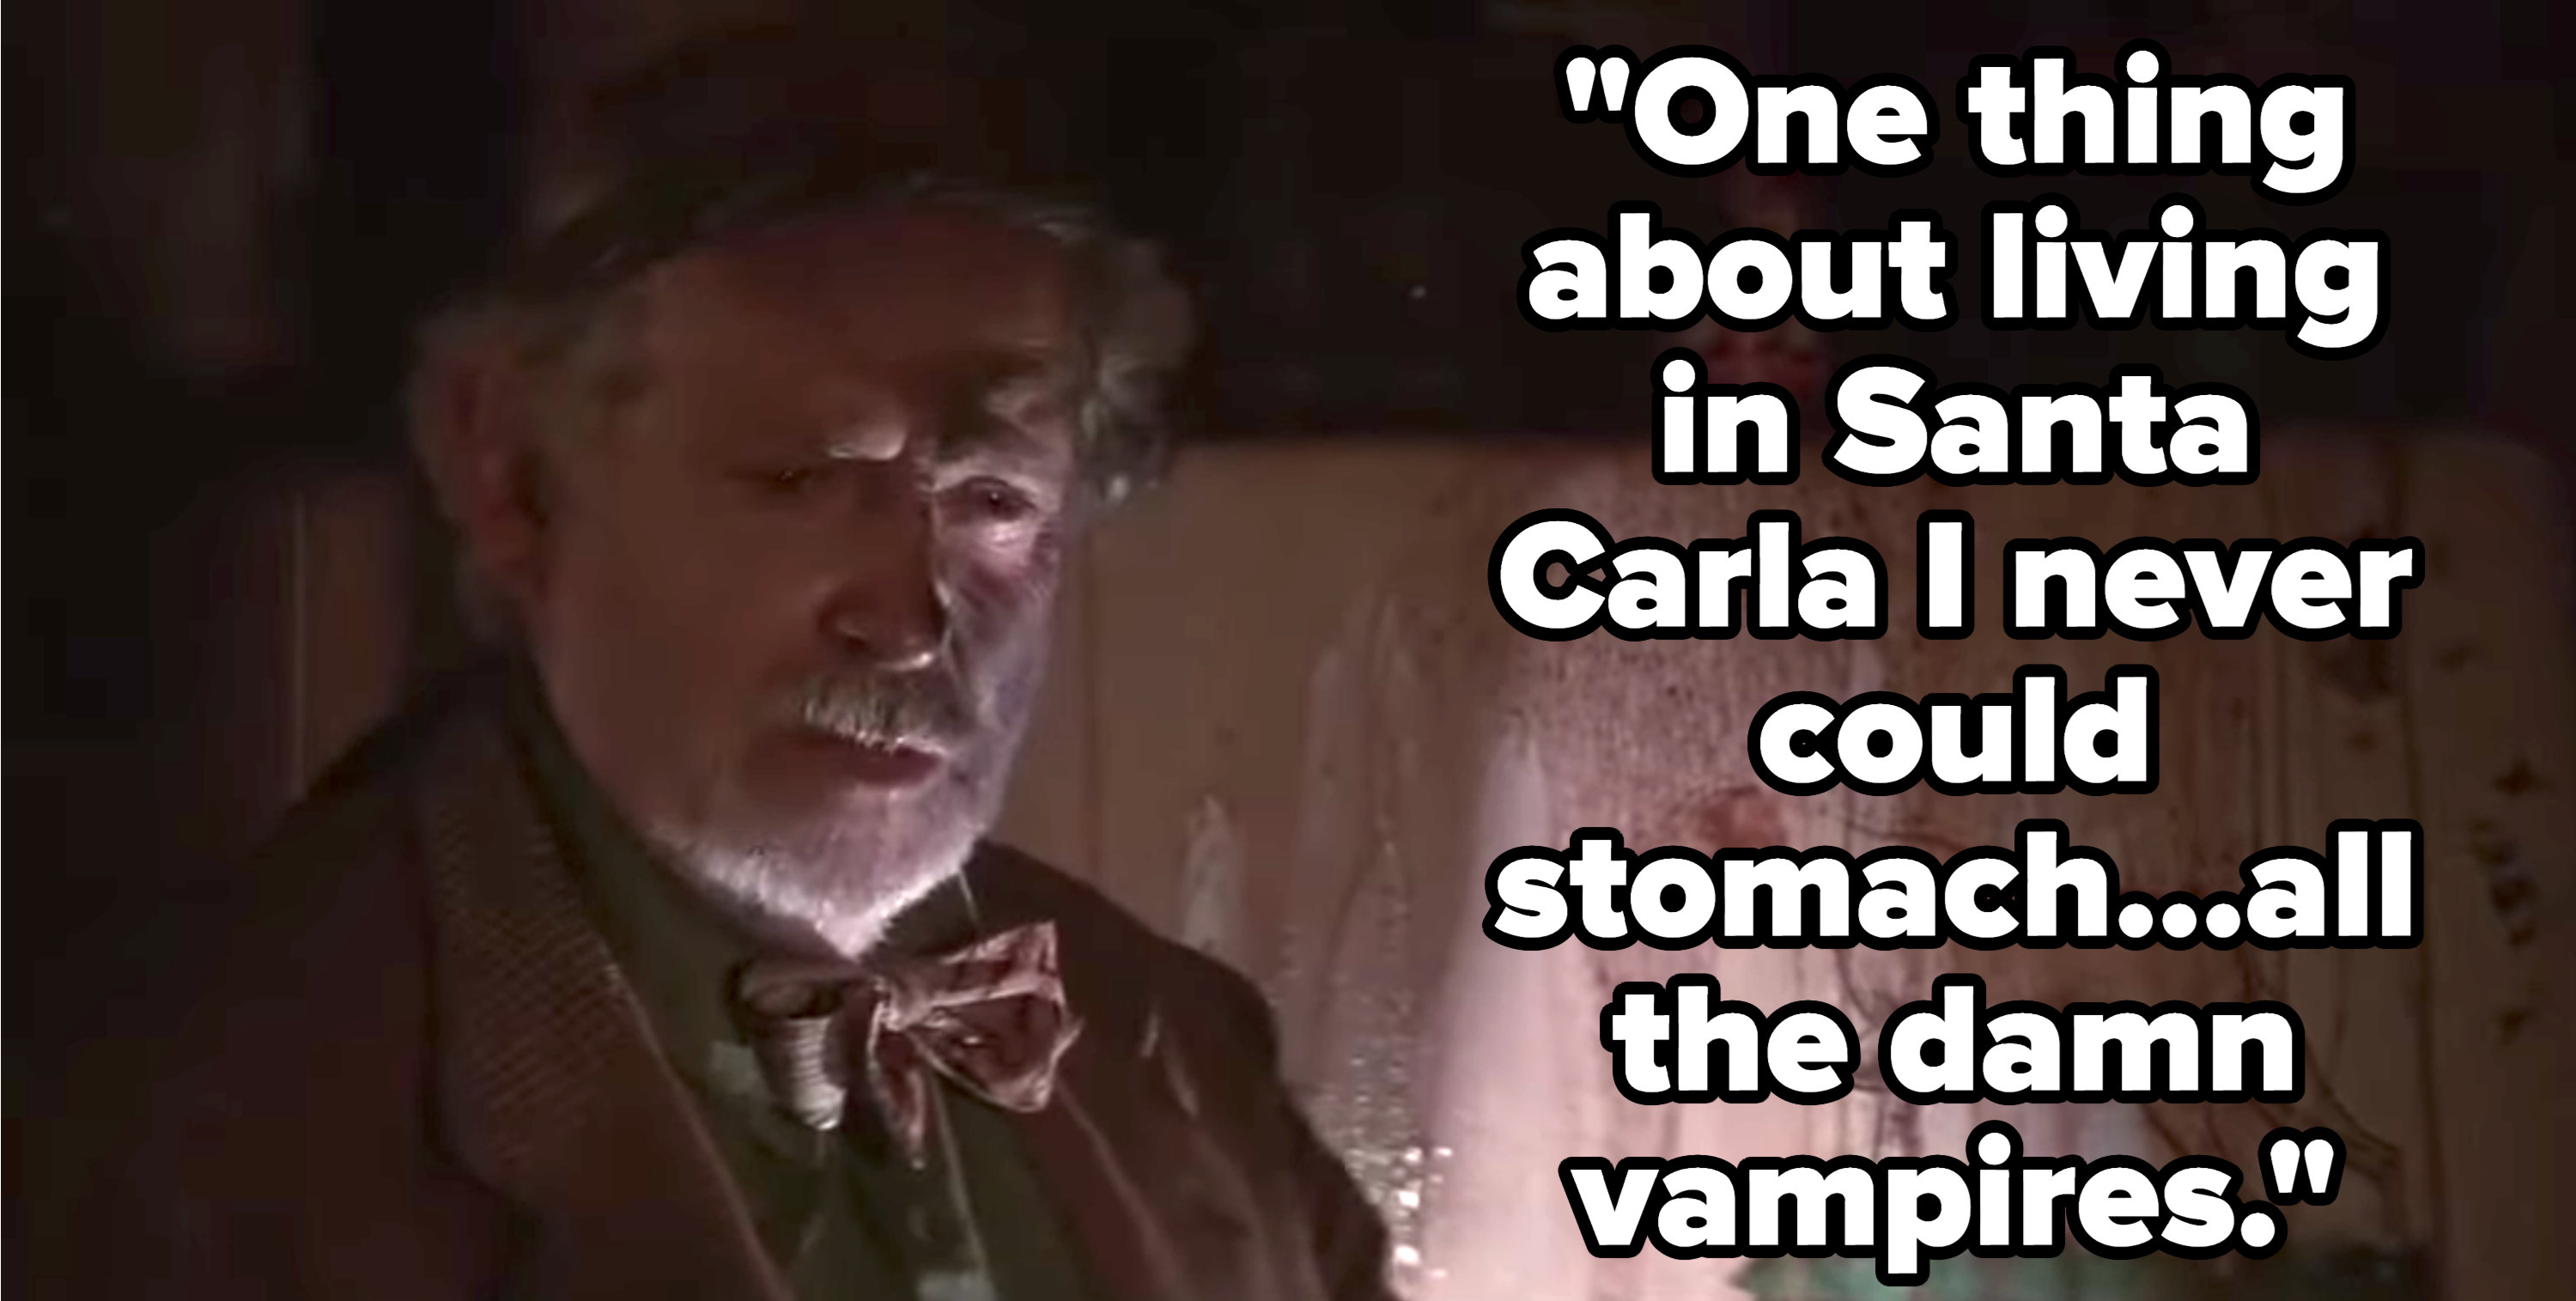 """Grandpa says, """"One thing about living in Santa Carla I never could stomach...all the damn vampires"""""""